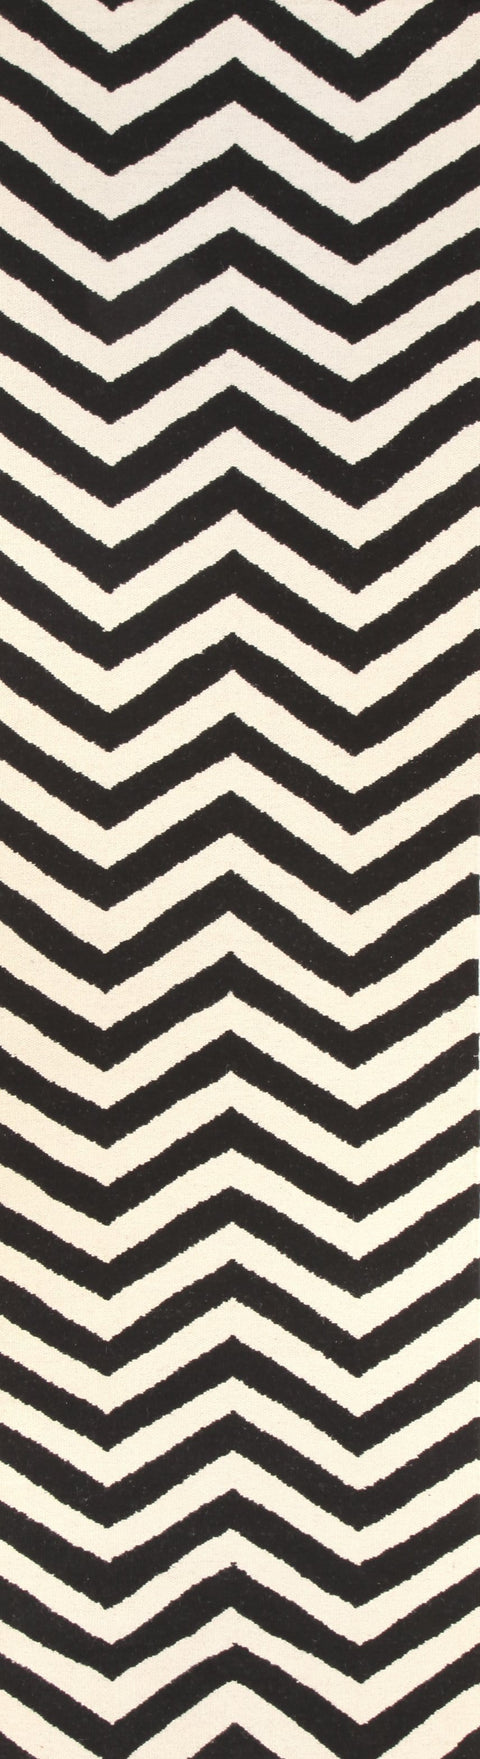 Cairo Black & White Chevron Flatweave Runner Rug